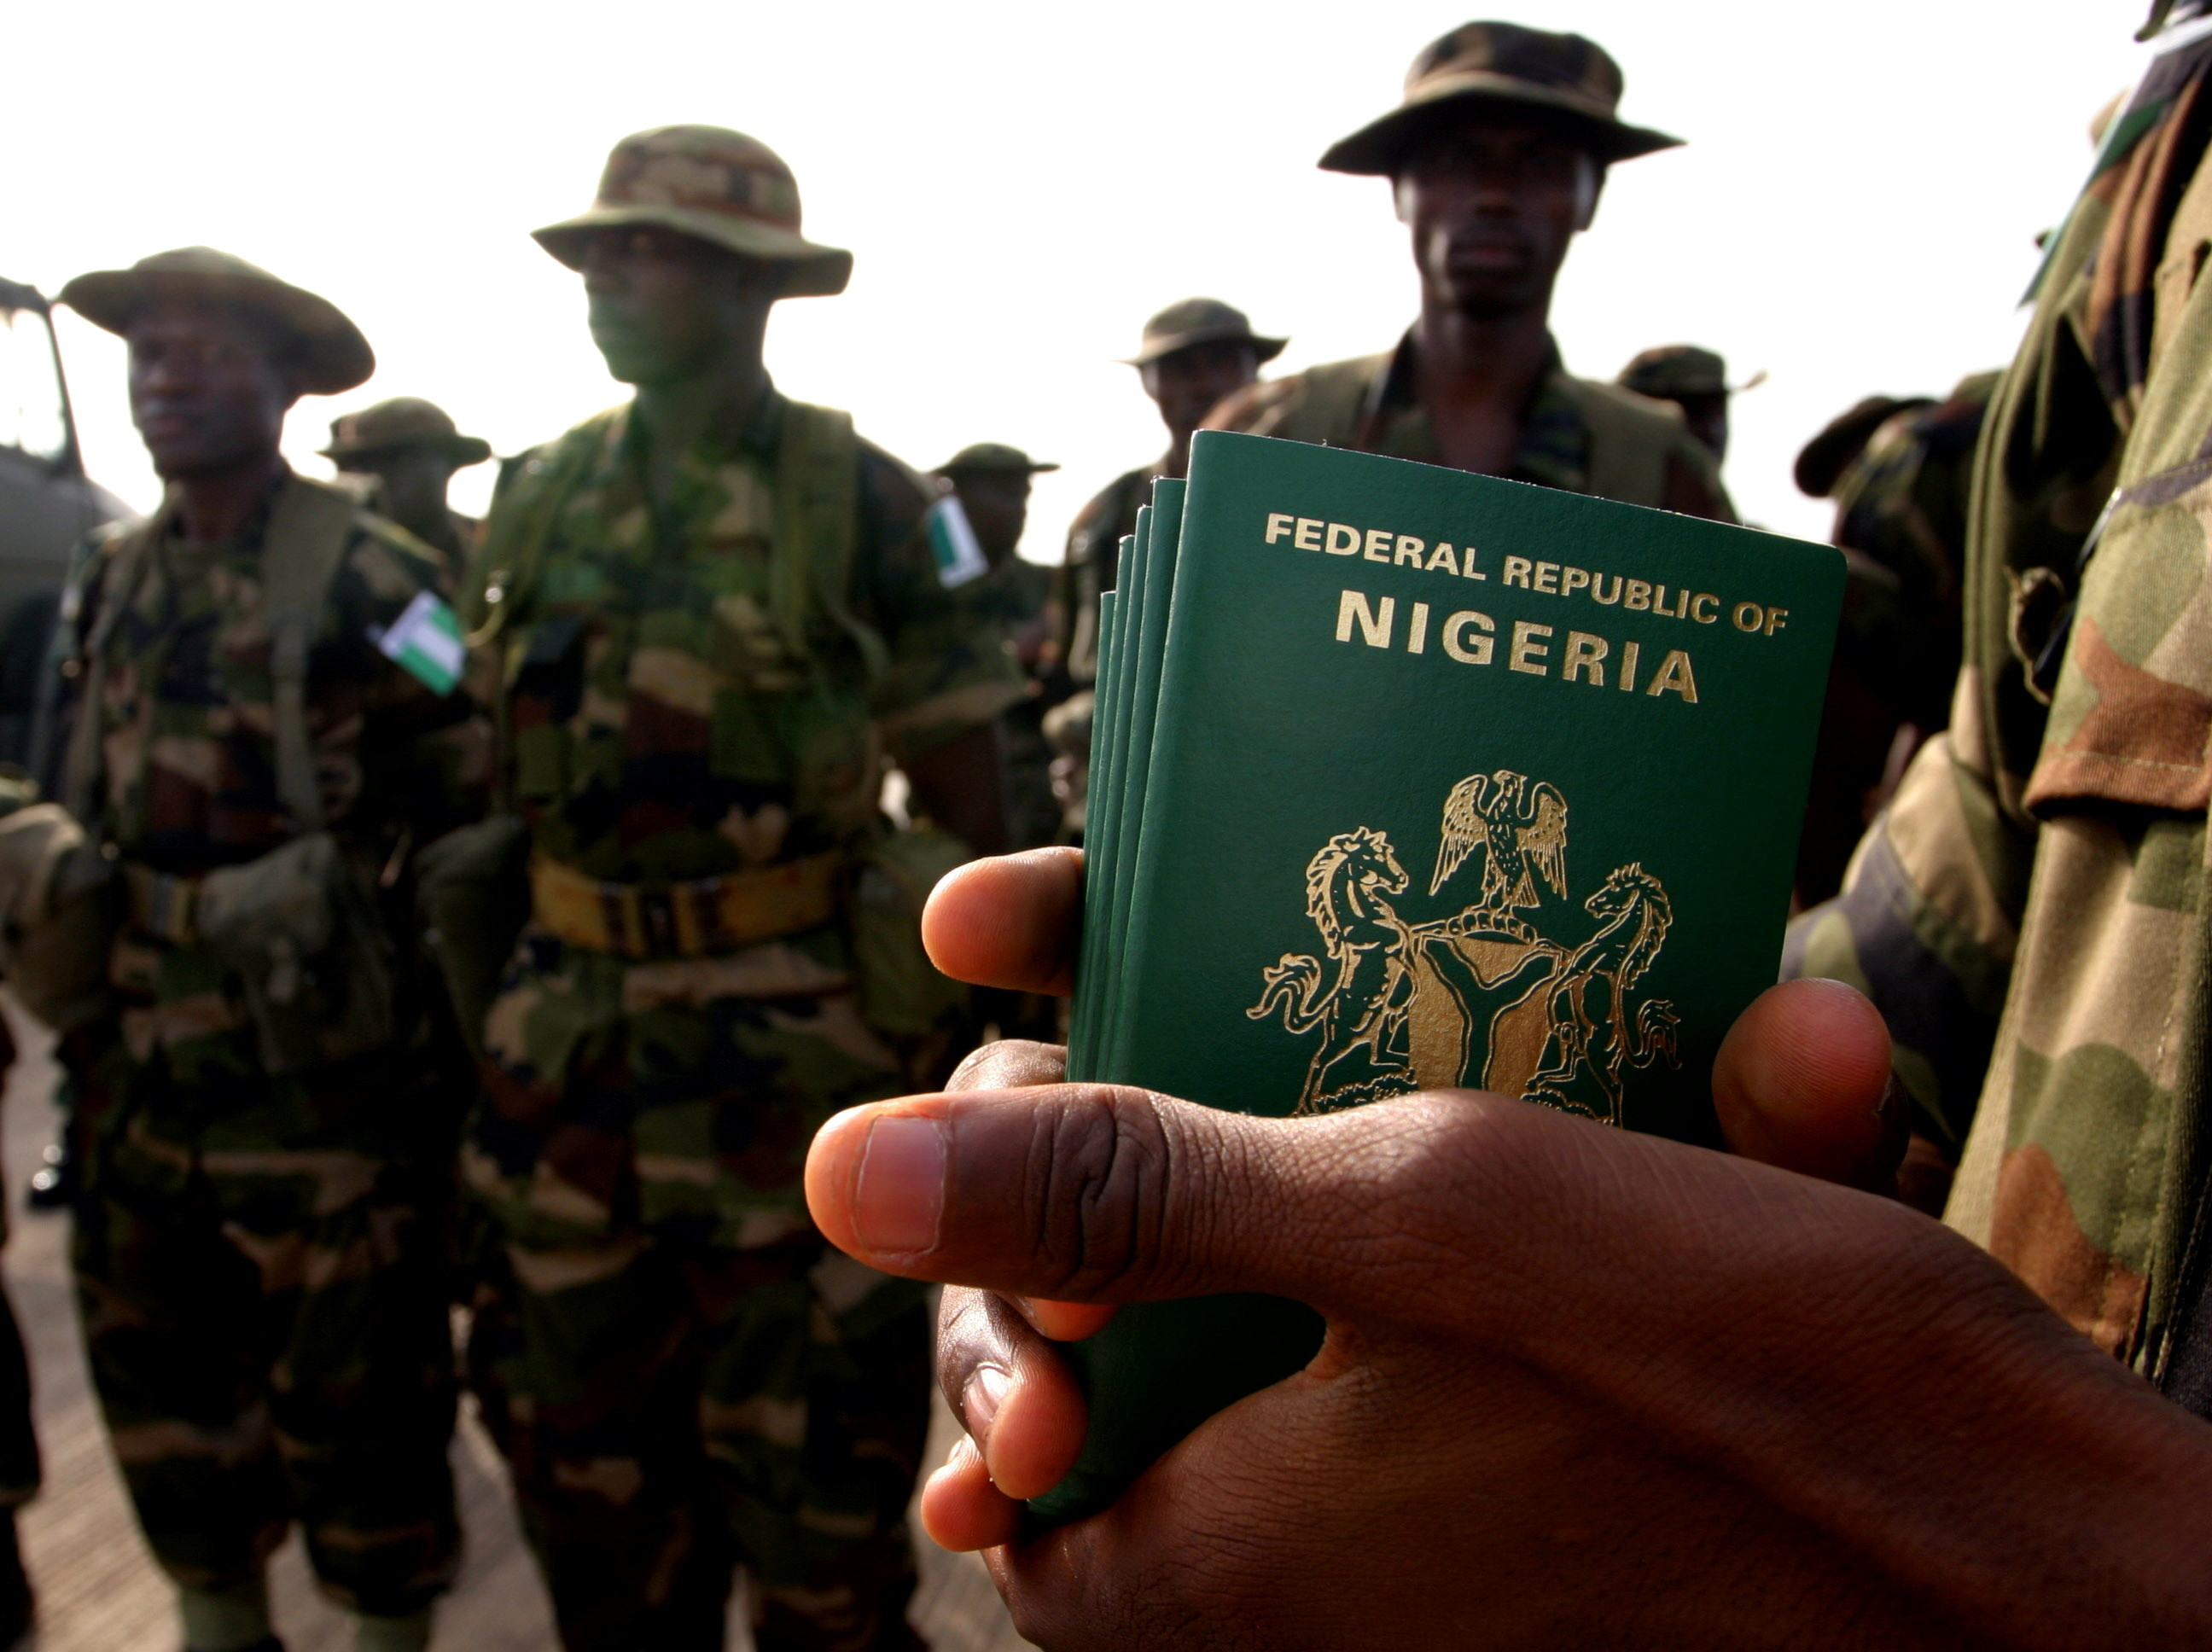 A Nigerian officer holds passports for his troops preparing to board a U.S. military plane in the Nigerian capital Abuja October 28, 2004, before flying to El-Fasher in Darfur to reinforce an expanded African Union peacekeeping effort in the violent region of western Sudan. The U.S. airlift is the first U.S. military deployment in the Darfur conflict. - RTXN07N